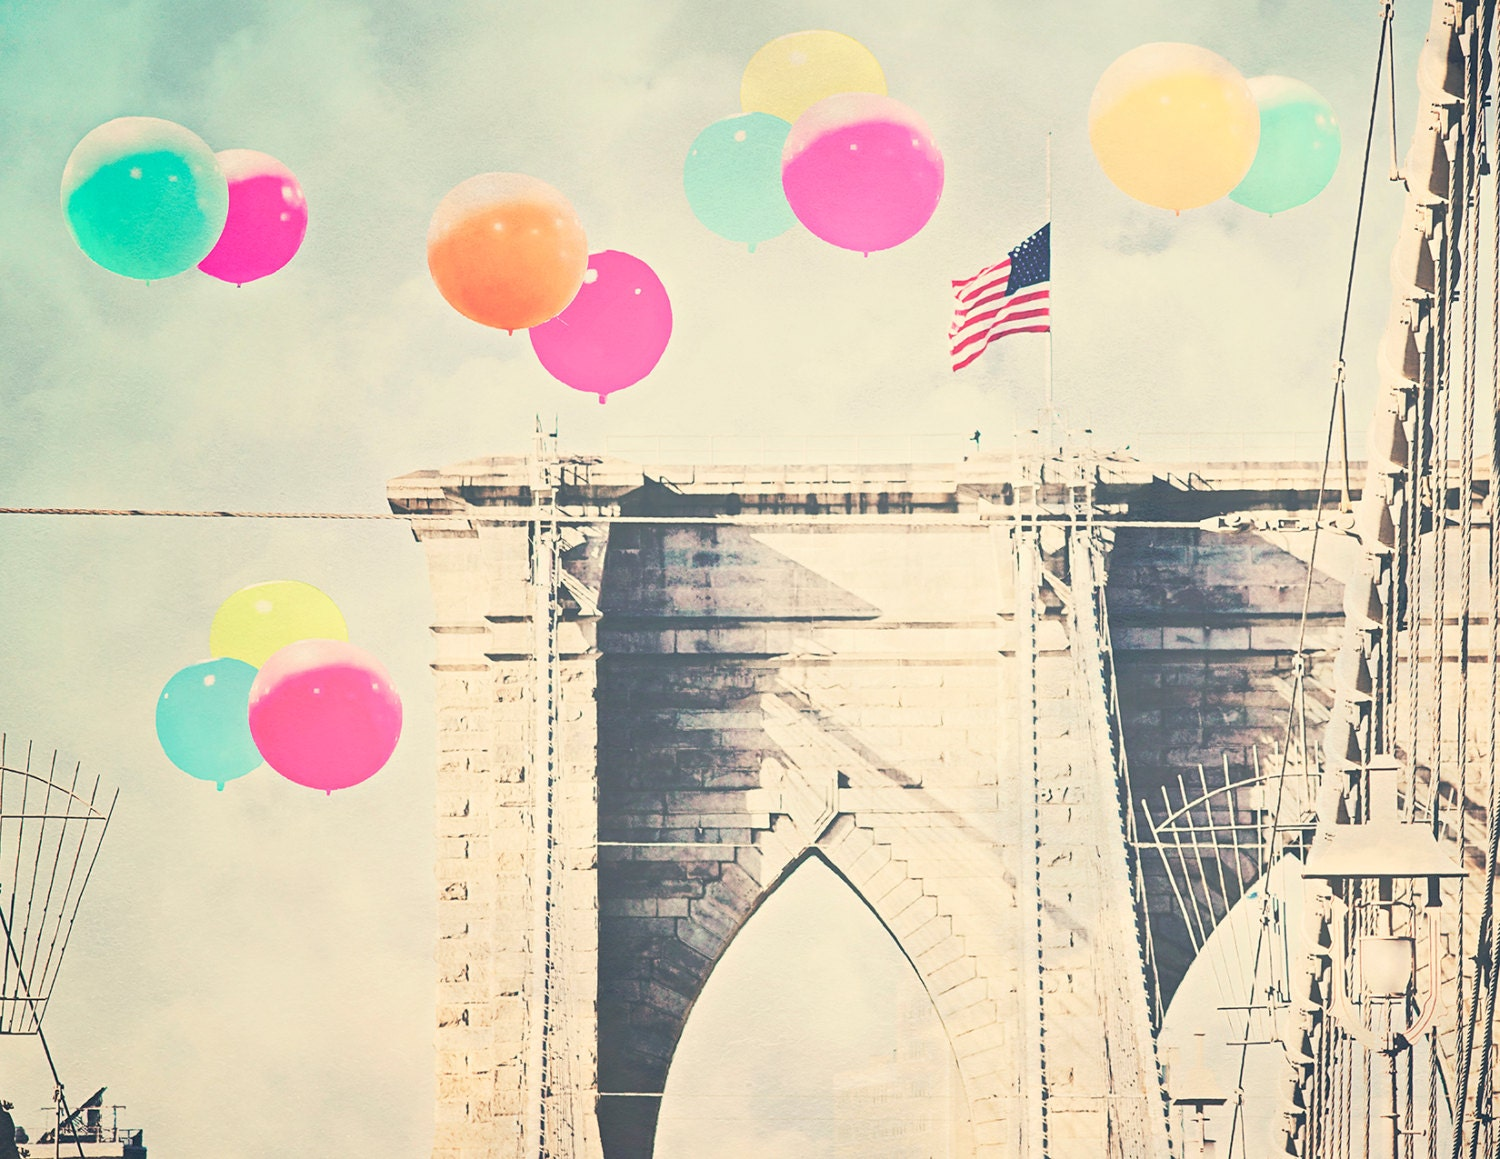 Brooklyn Bridge 8x10 Photograph Bright Balloons Over